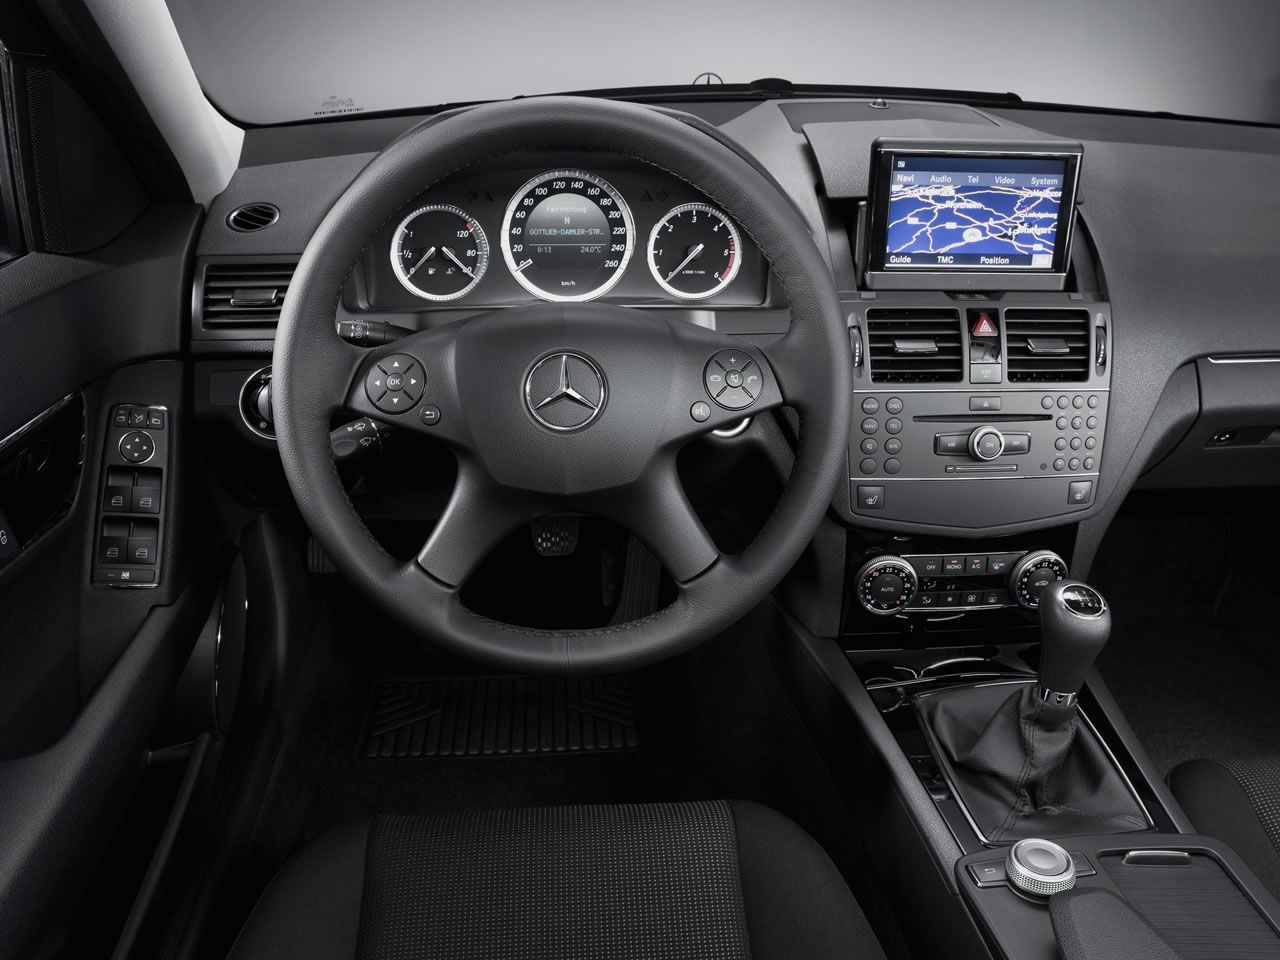 Mercedes benz c class c280 luxury